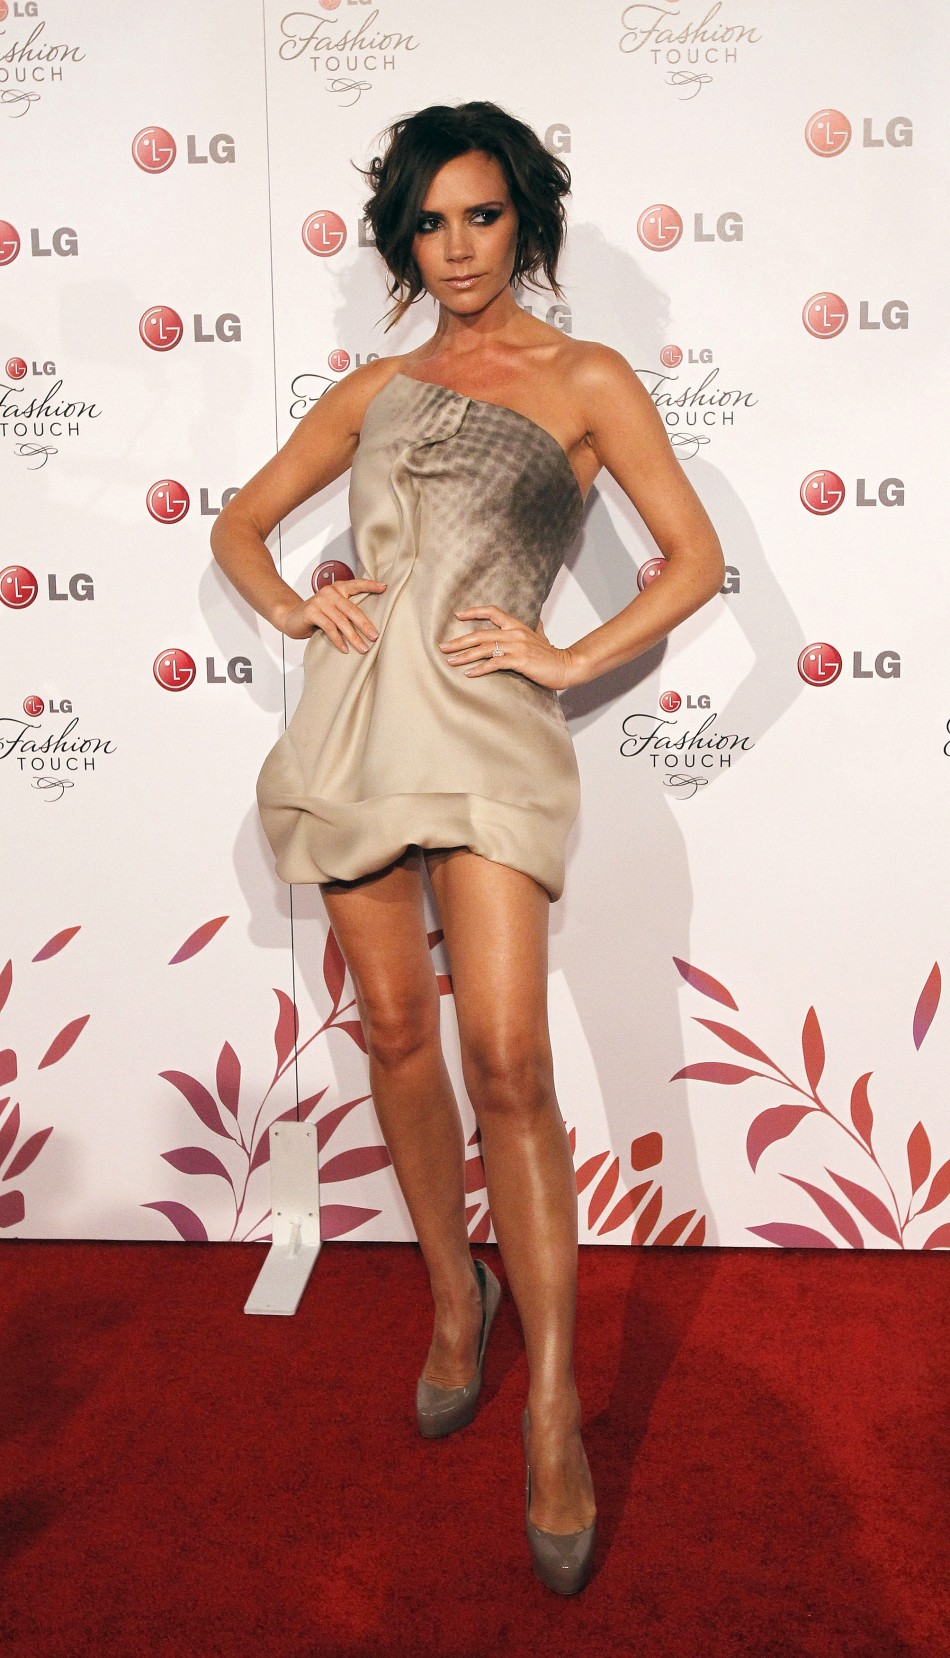 Victoria Beckhams Top Fashion Moments Through the Years